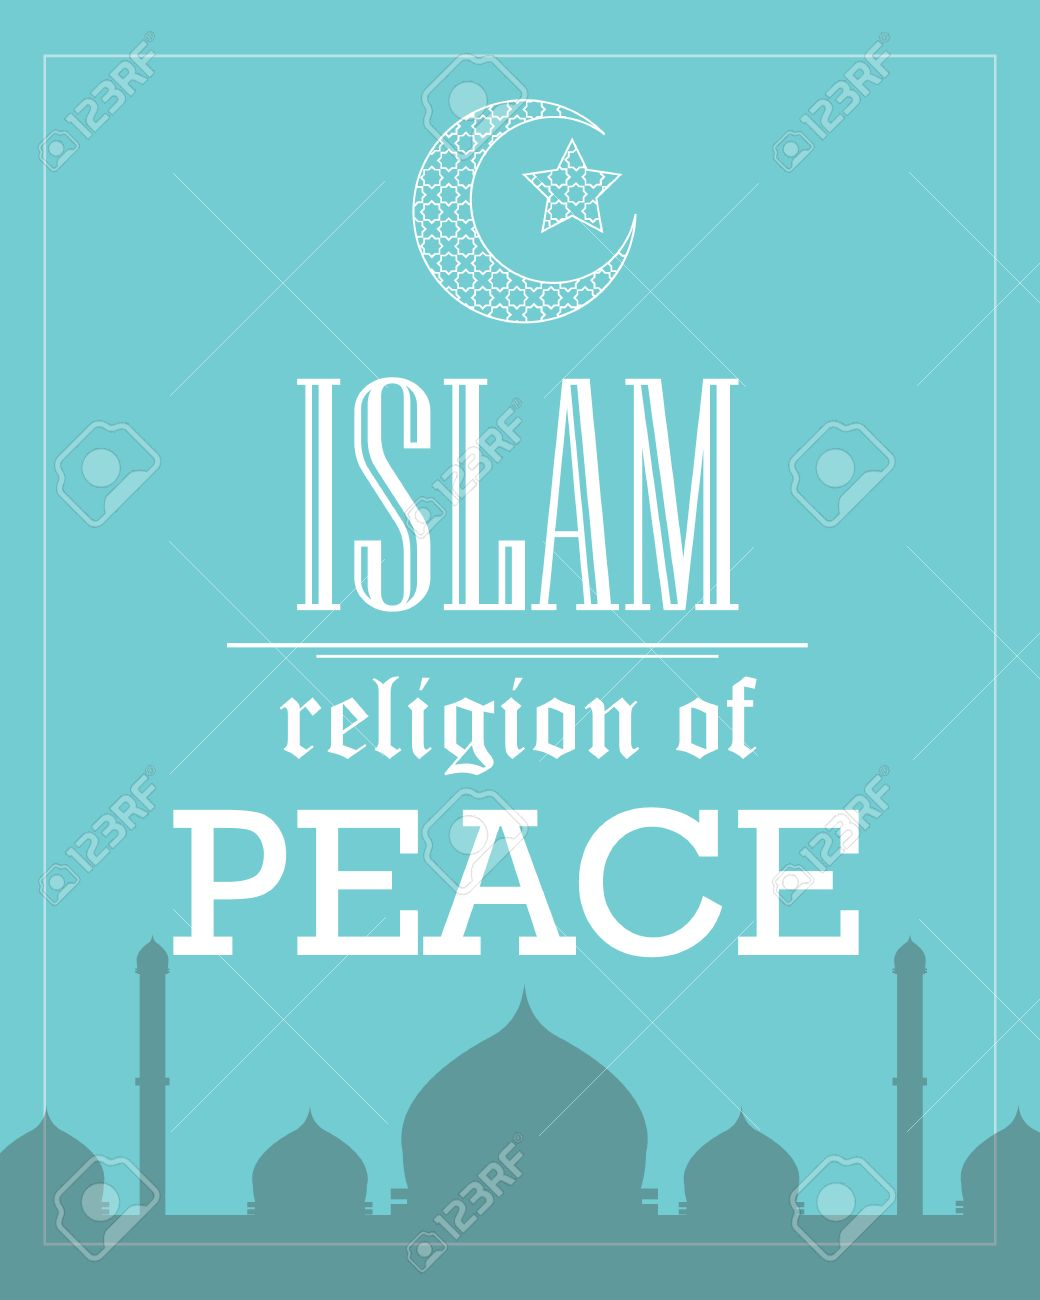 islam religion of peace poster template flat tipography